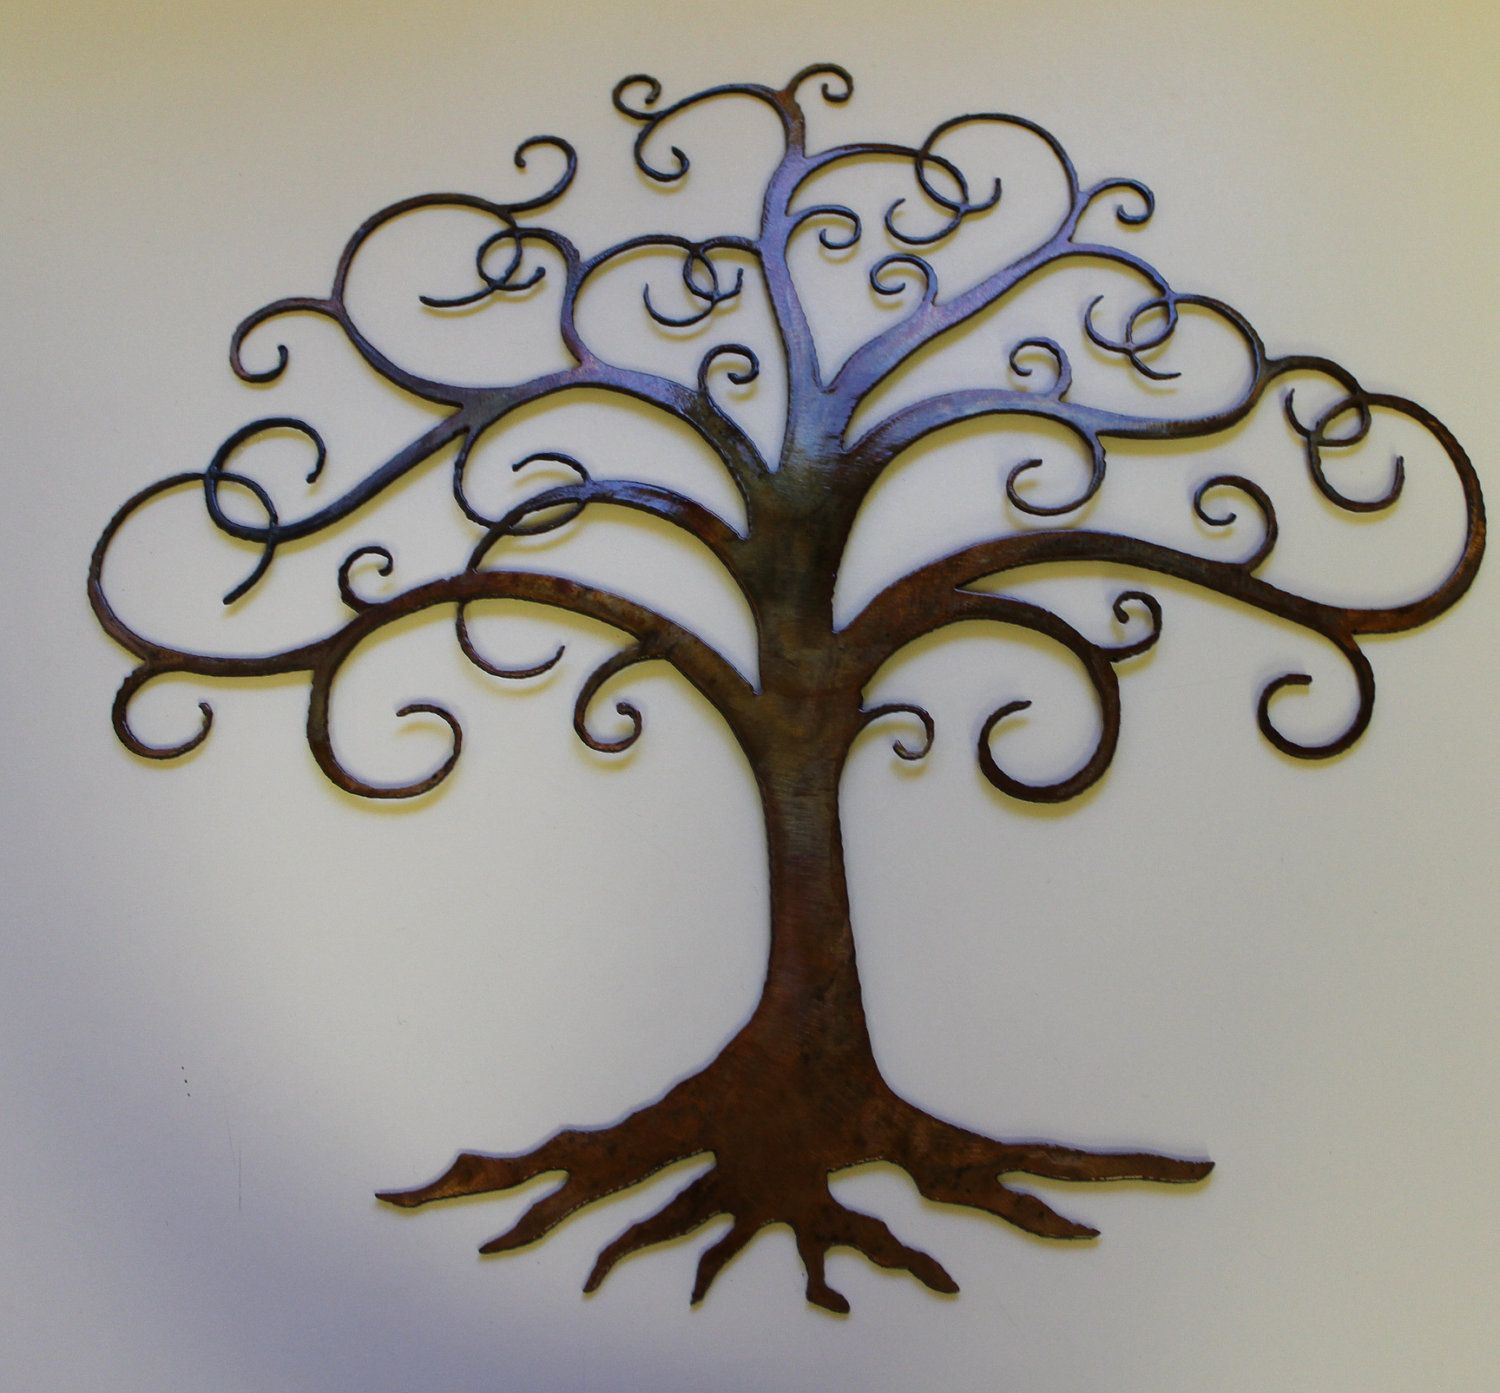 Tree of life swirled tree of life metal wall art decor for Tree wall art